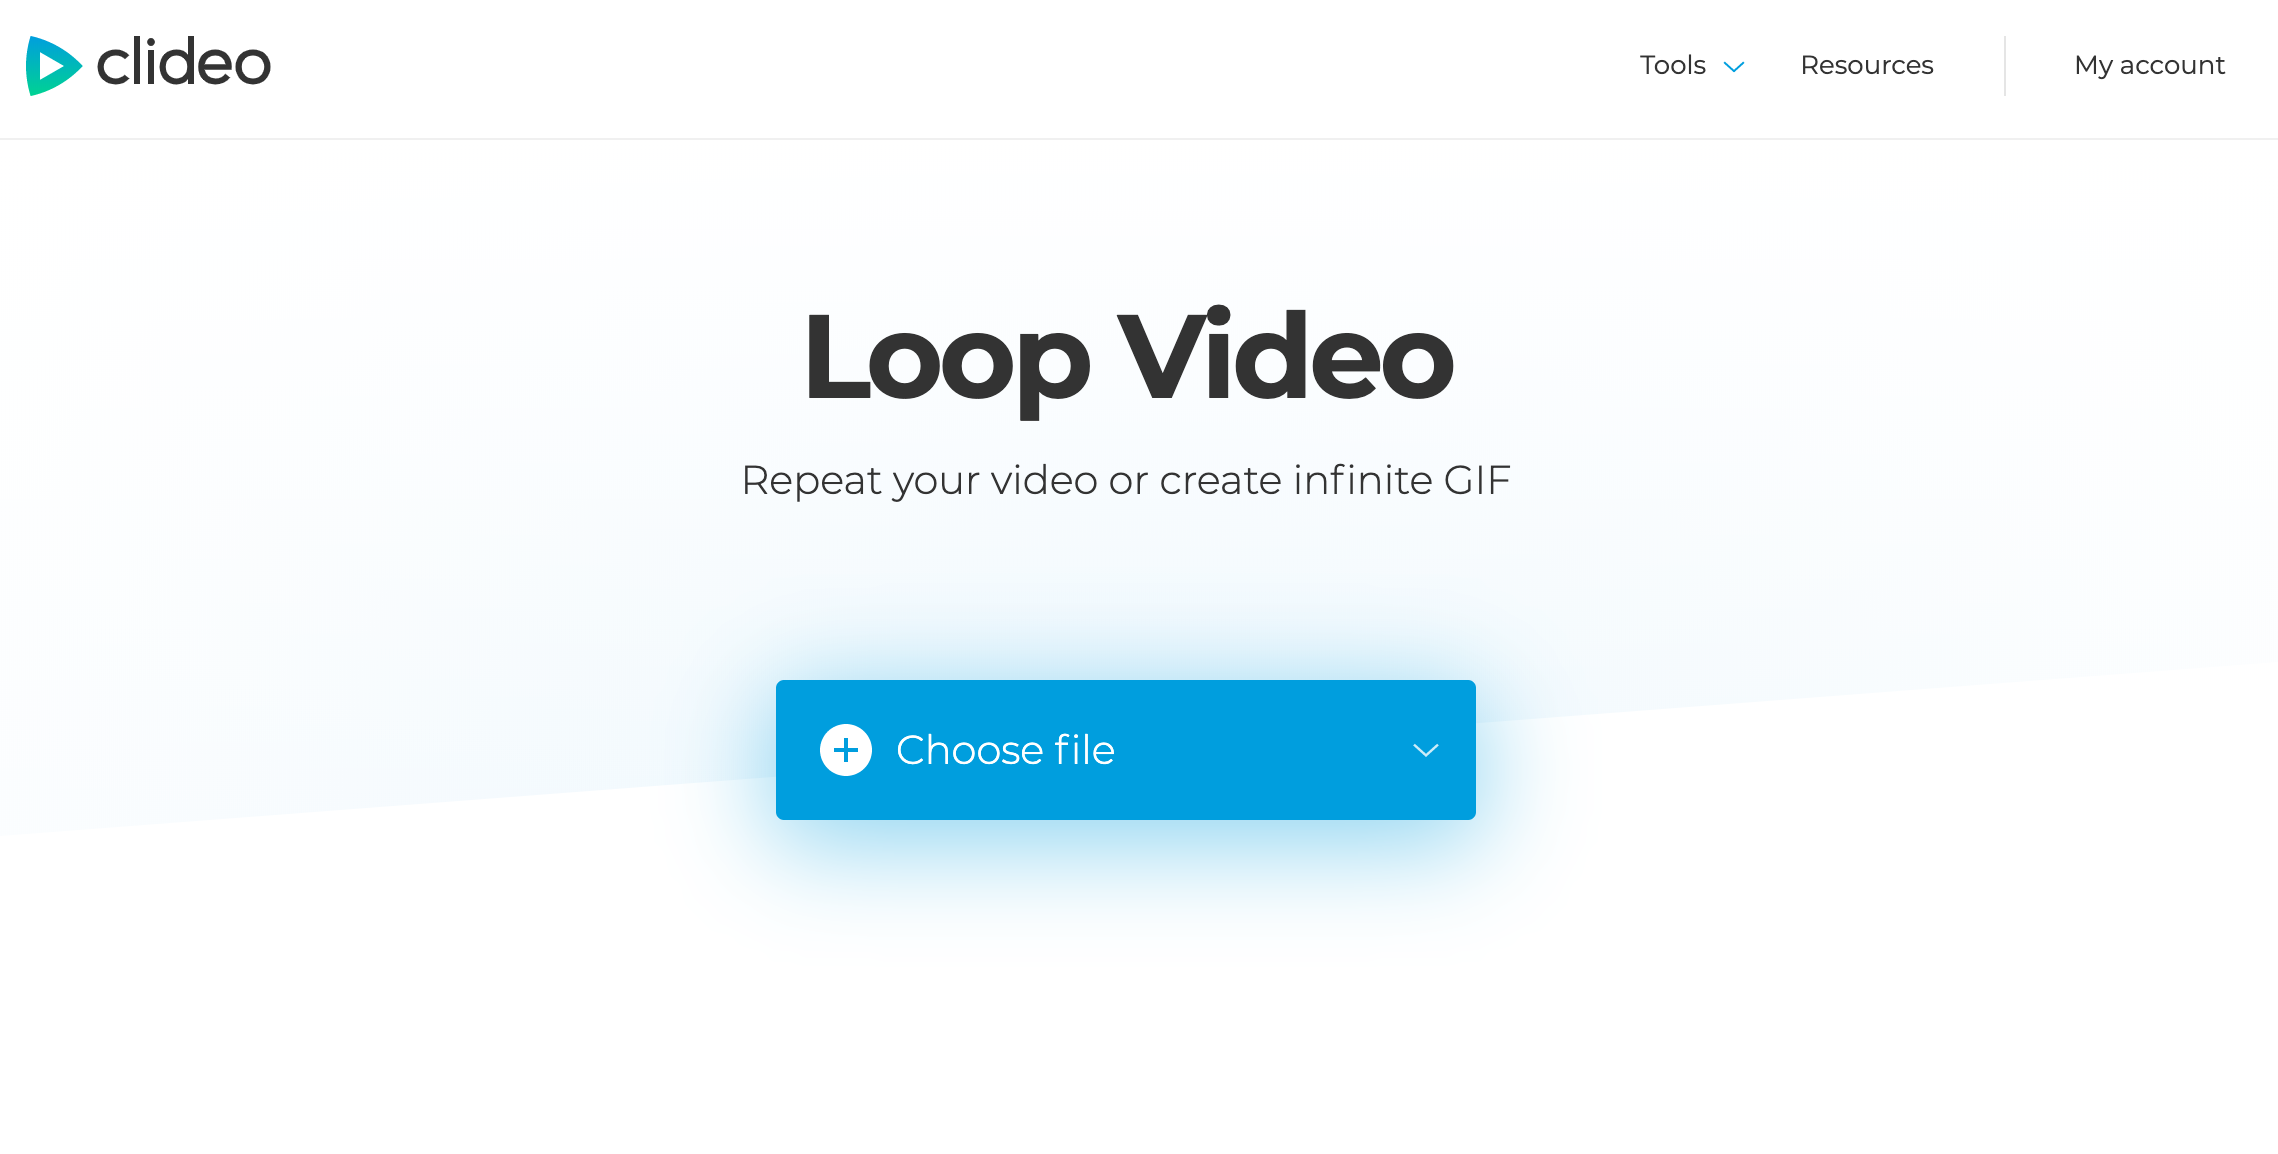 Add a video you want to loop for Instagram